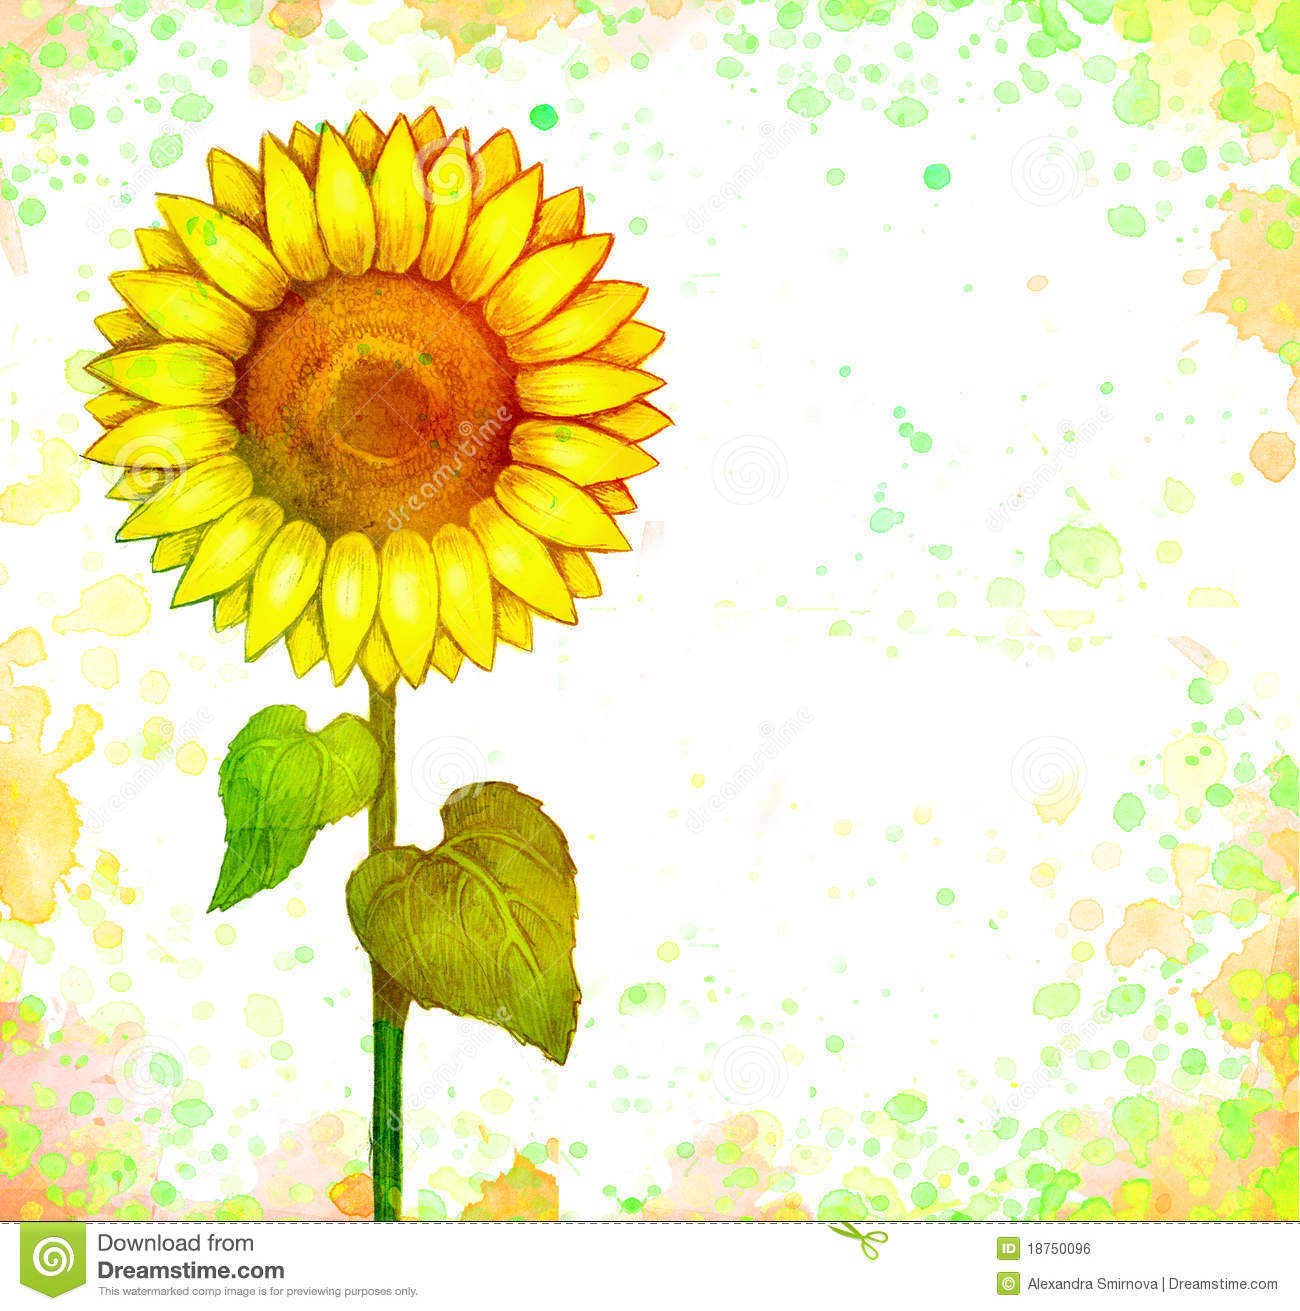 Cute Bees Wallpaper Drawing Of Sunflower Stock Illustration Image Of Colorful